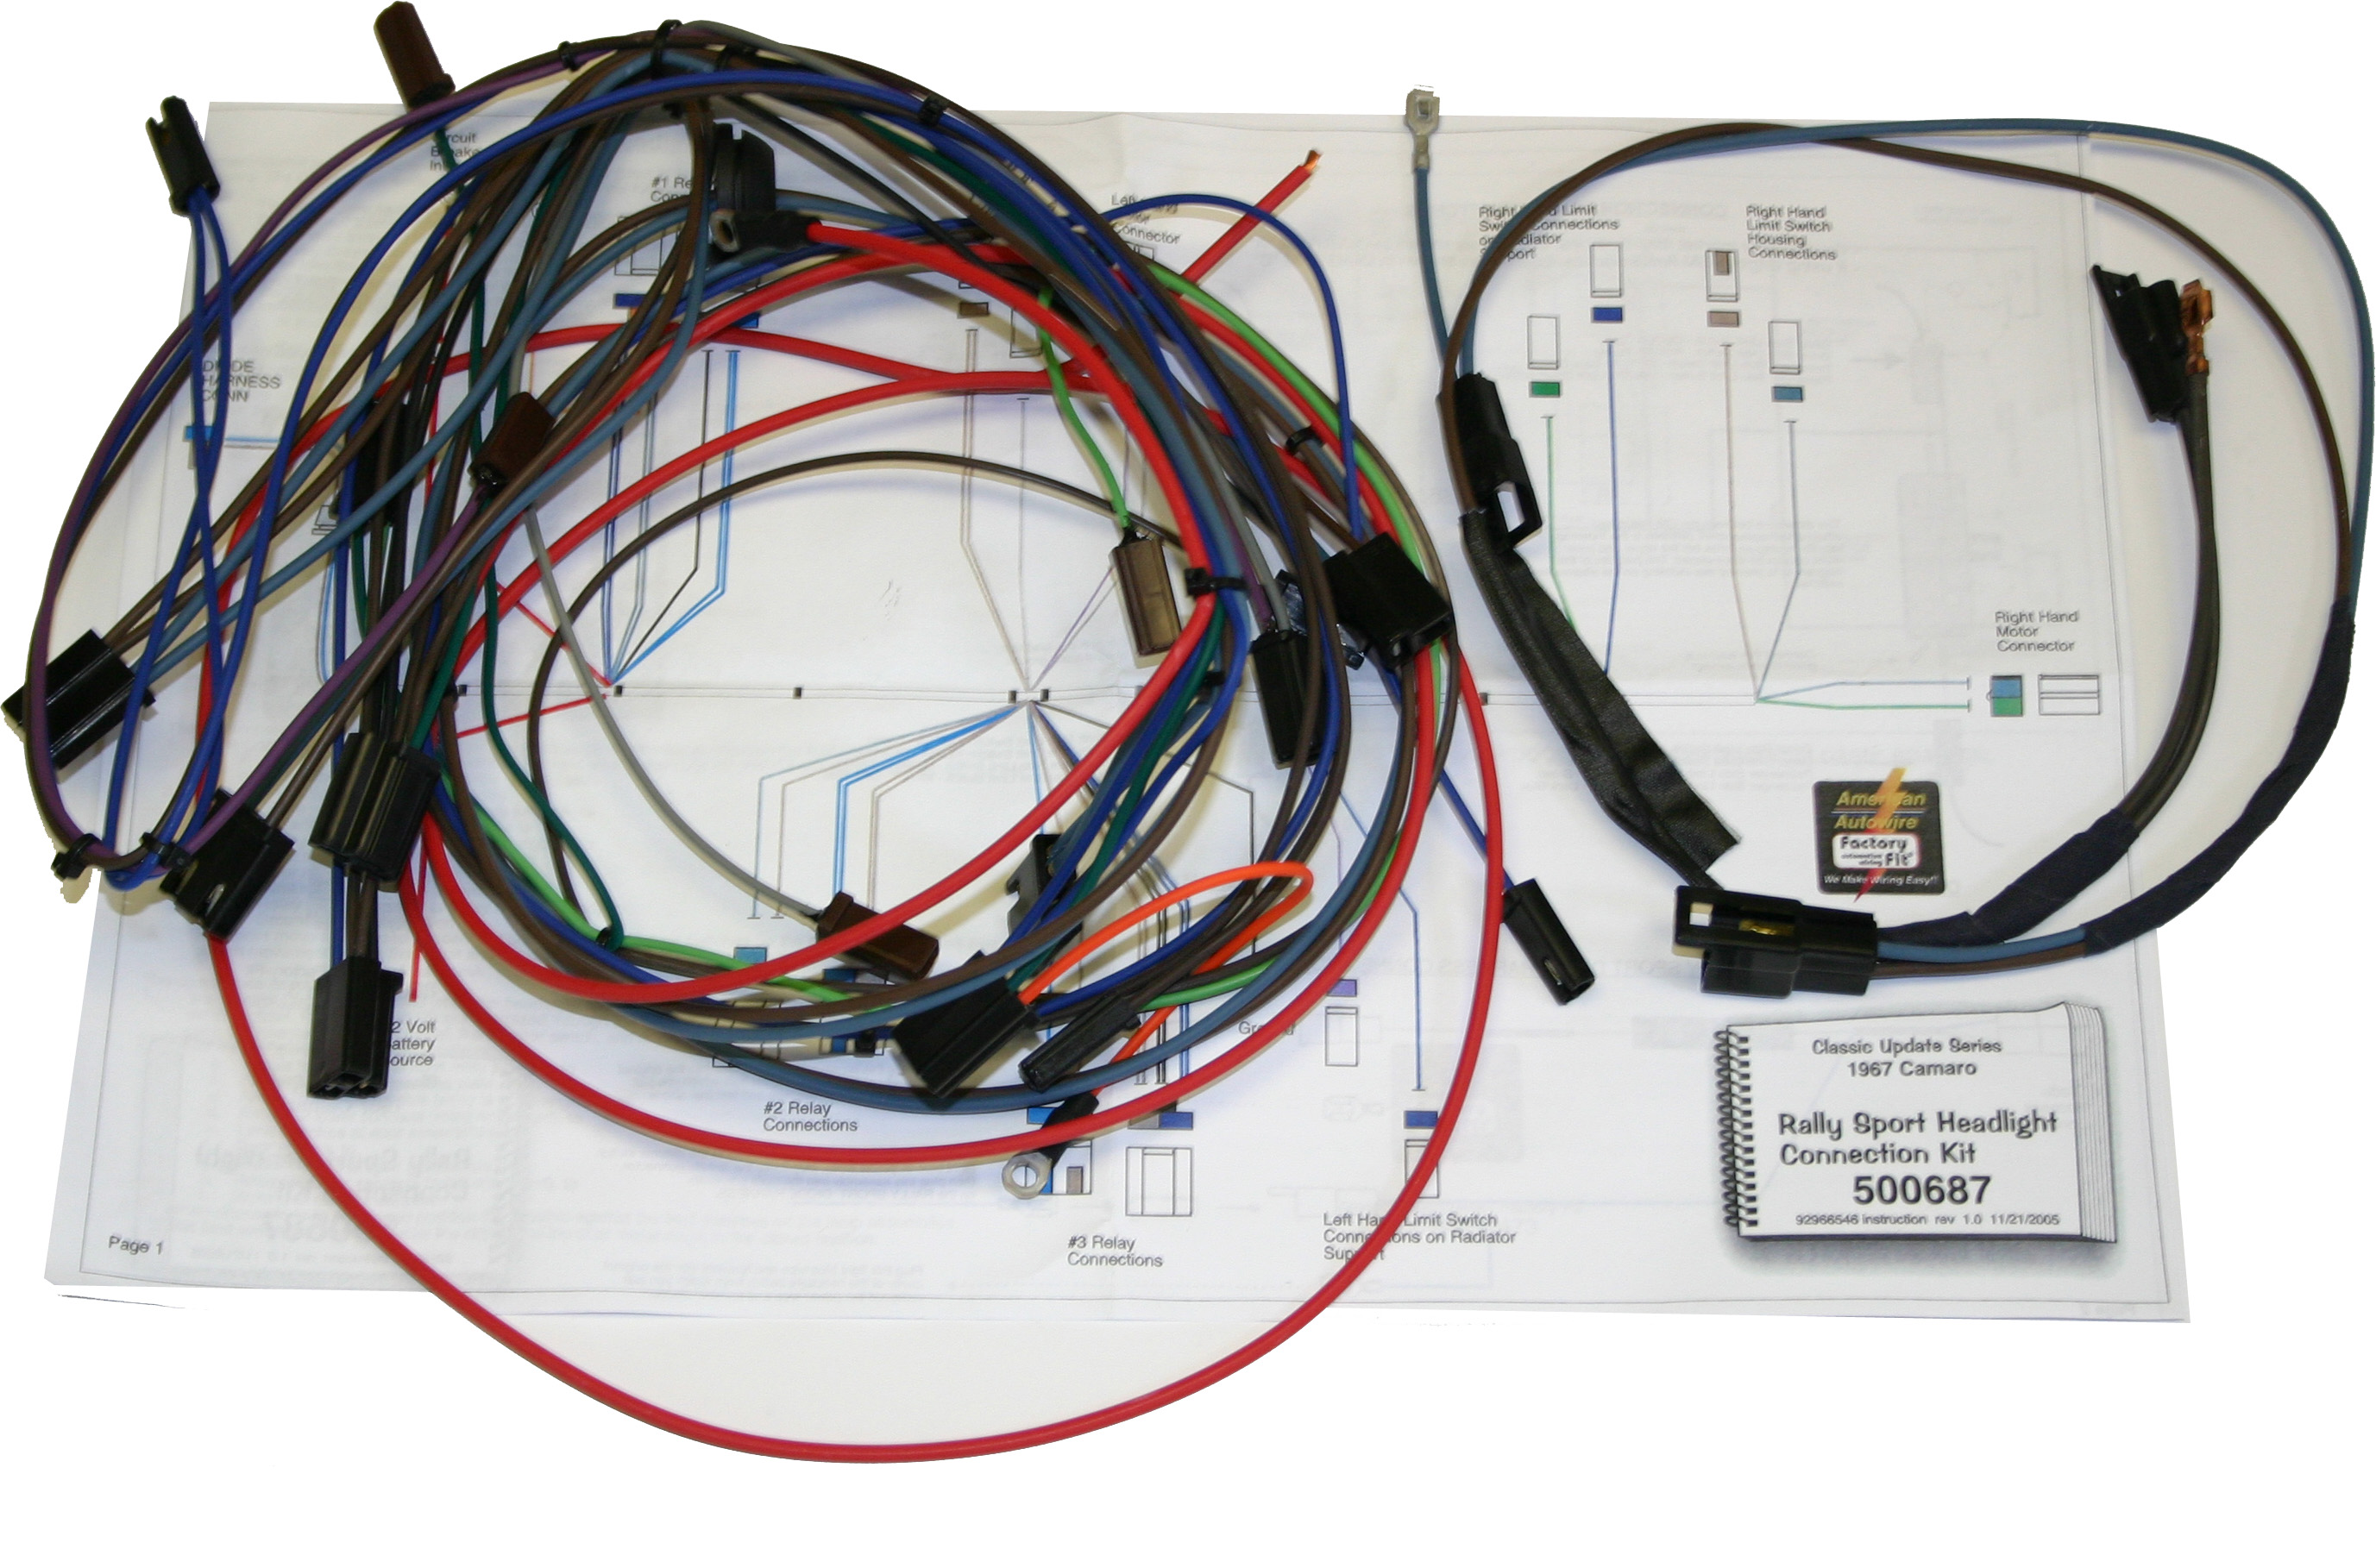 Old Ford Wiring Harness Kits For Cars Worksheet And Diagram Ez Kit Mustang Detailed Schematics Rh Keyplusrubber Com